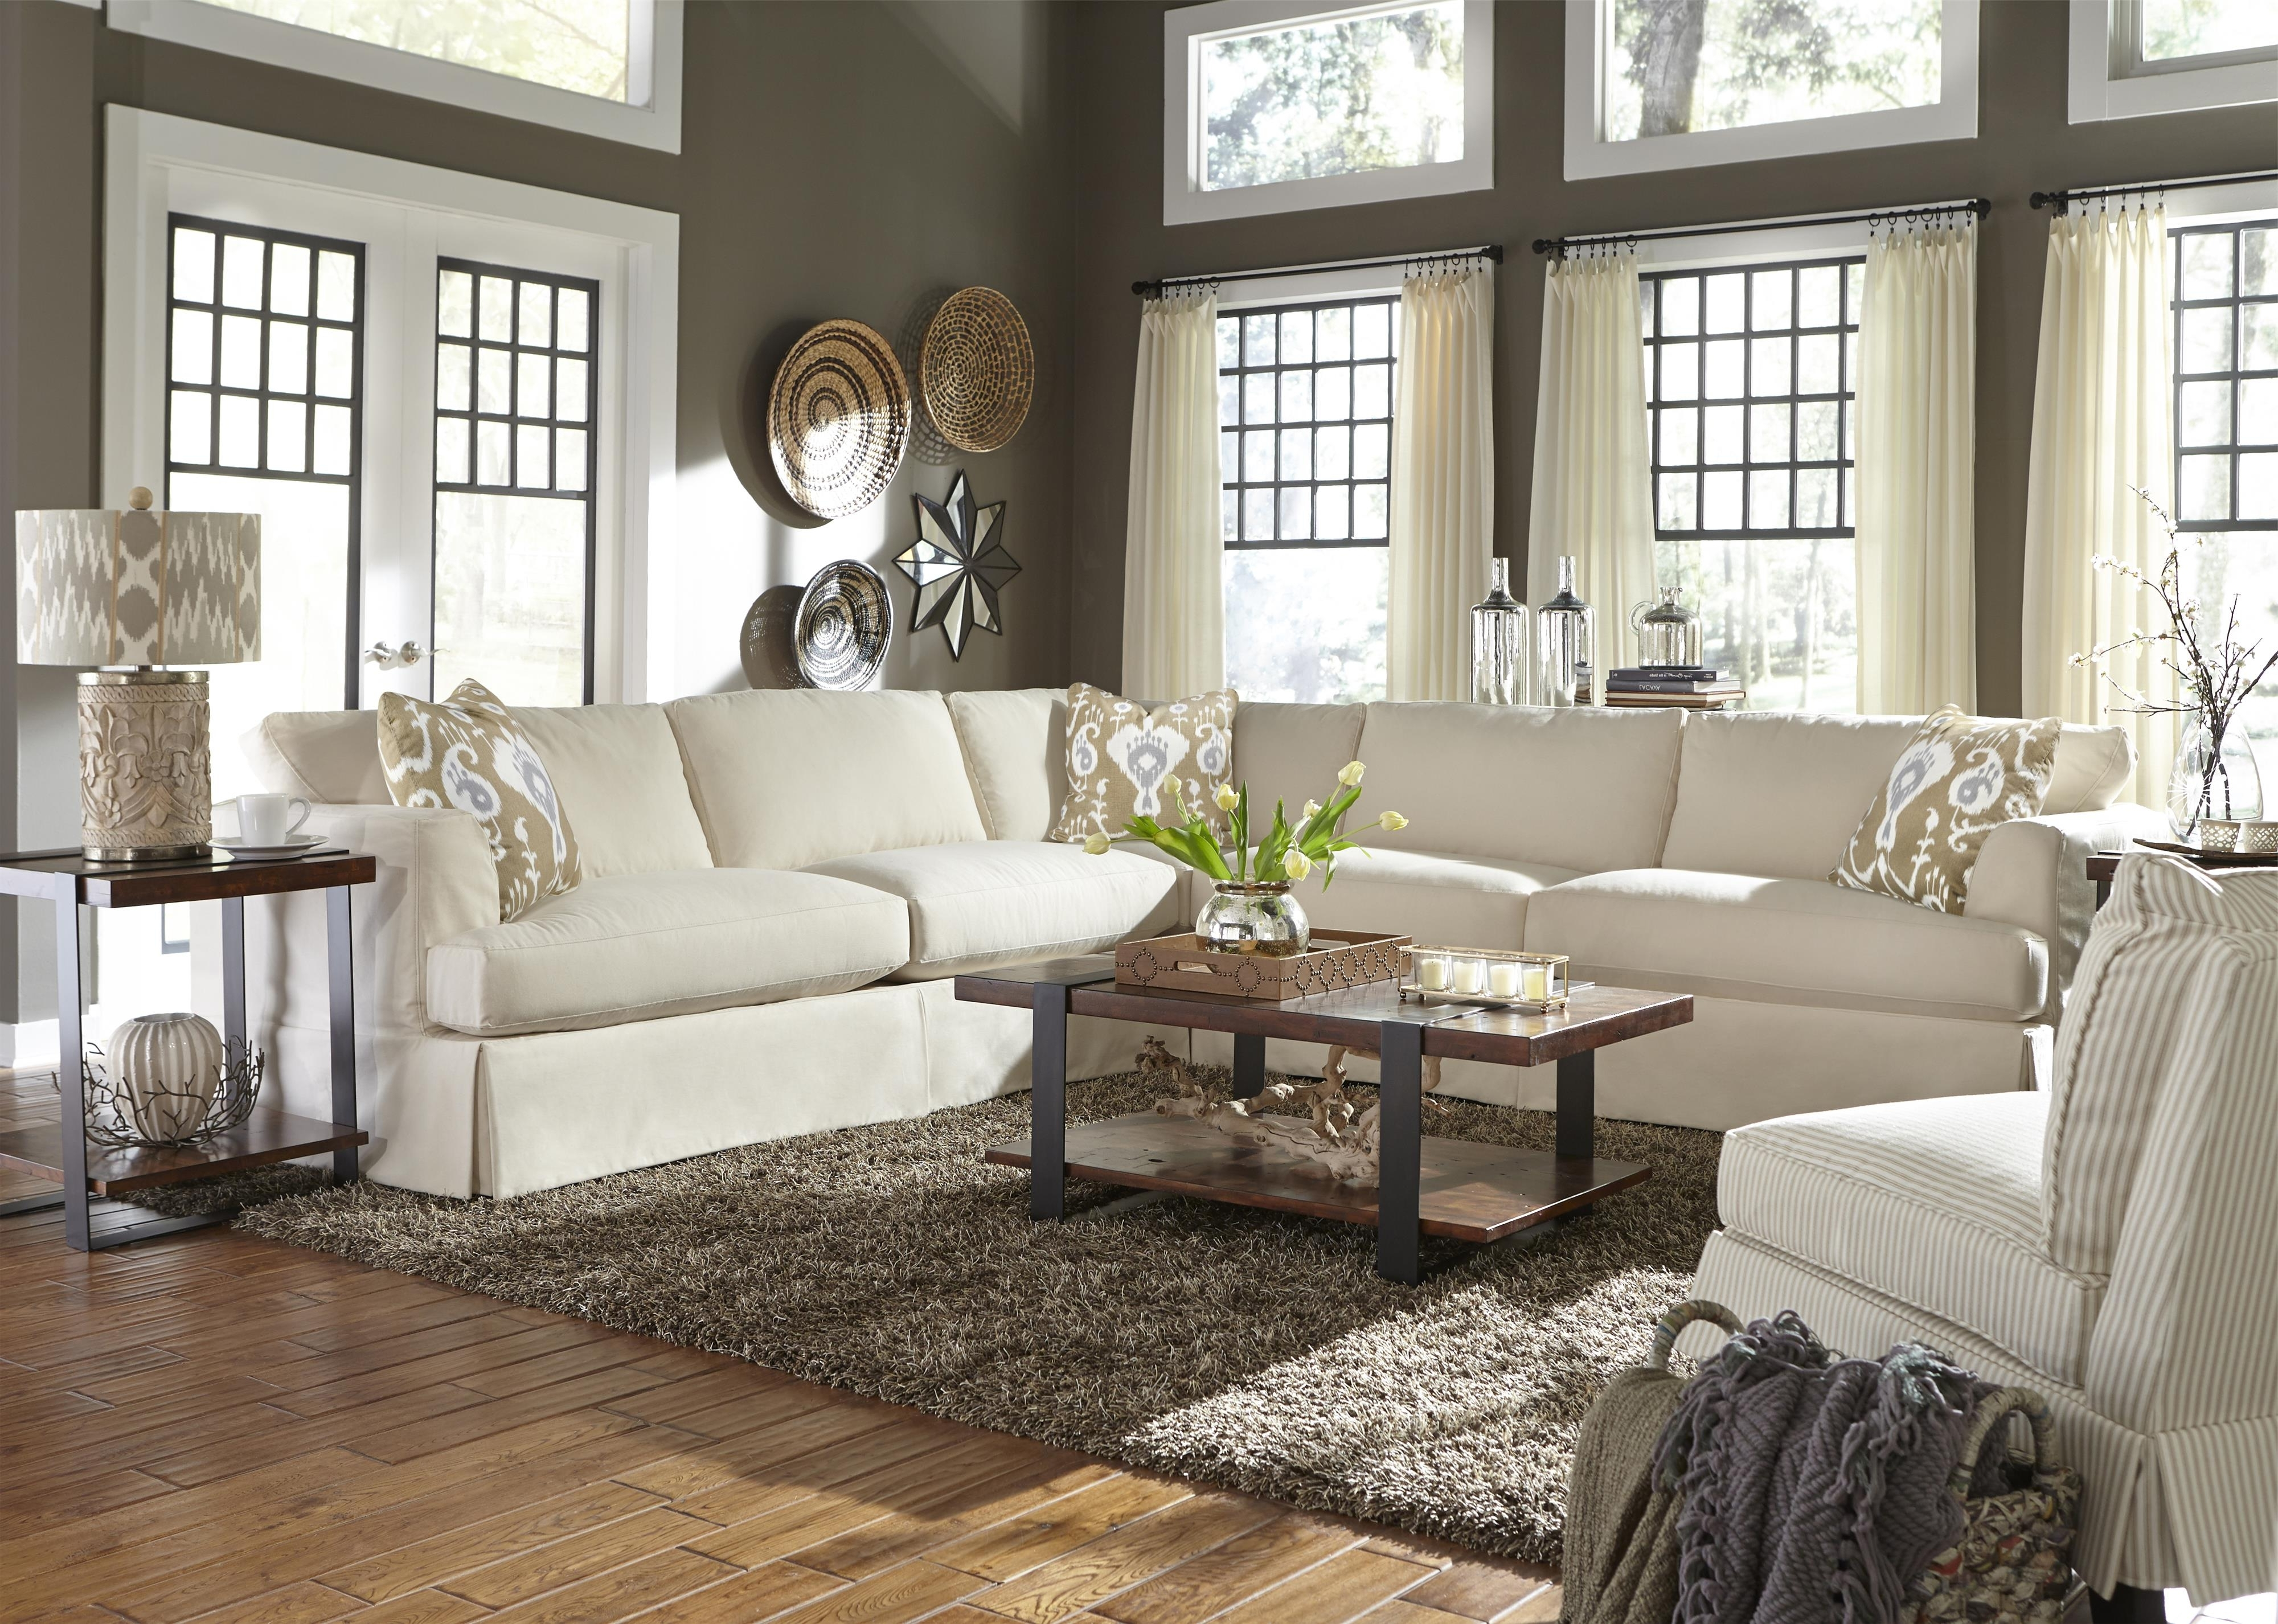 Klaussner Bentley Casual Sectional Sofa With Slip Cover (View 10 of 20)